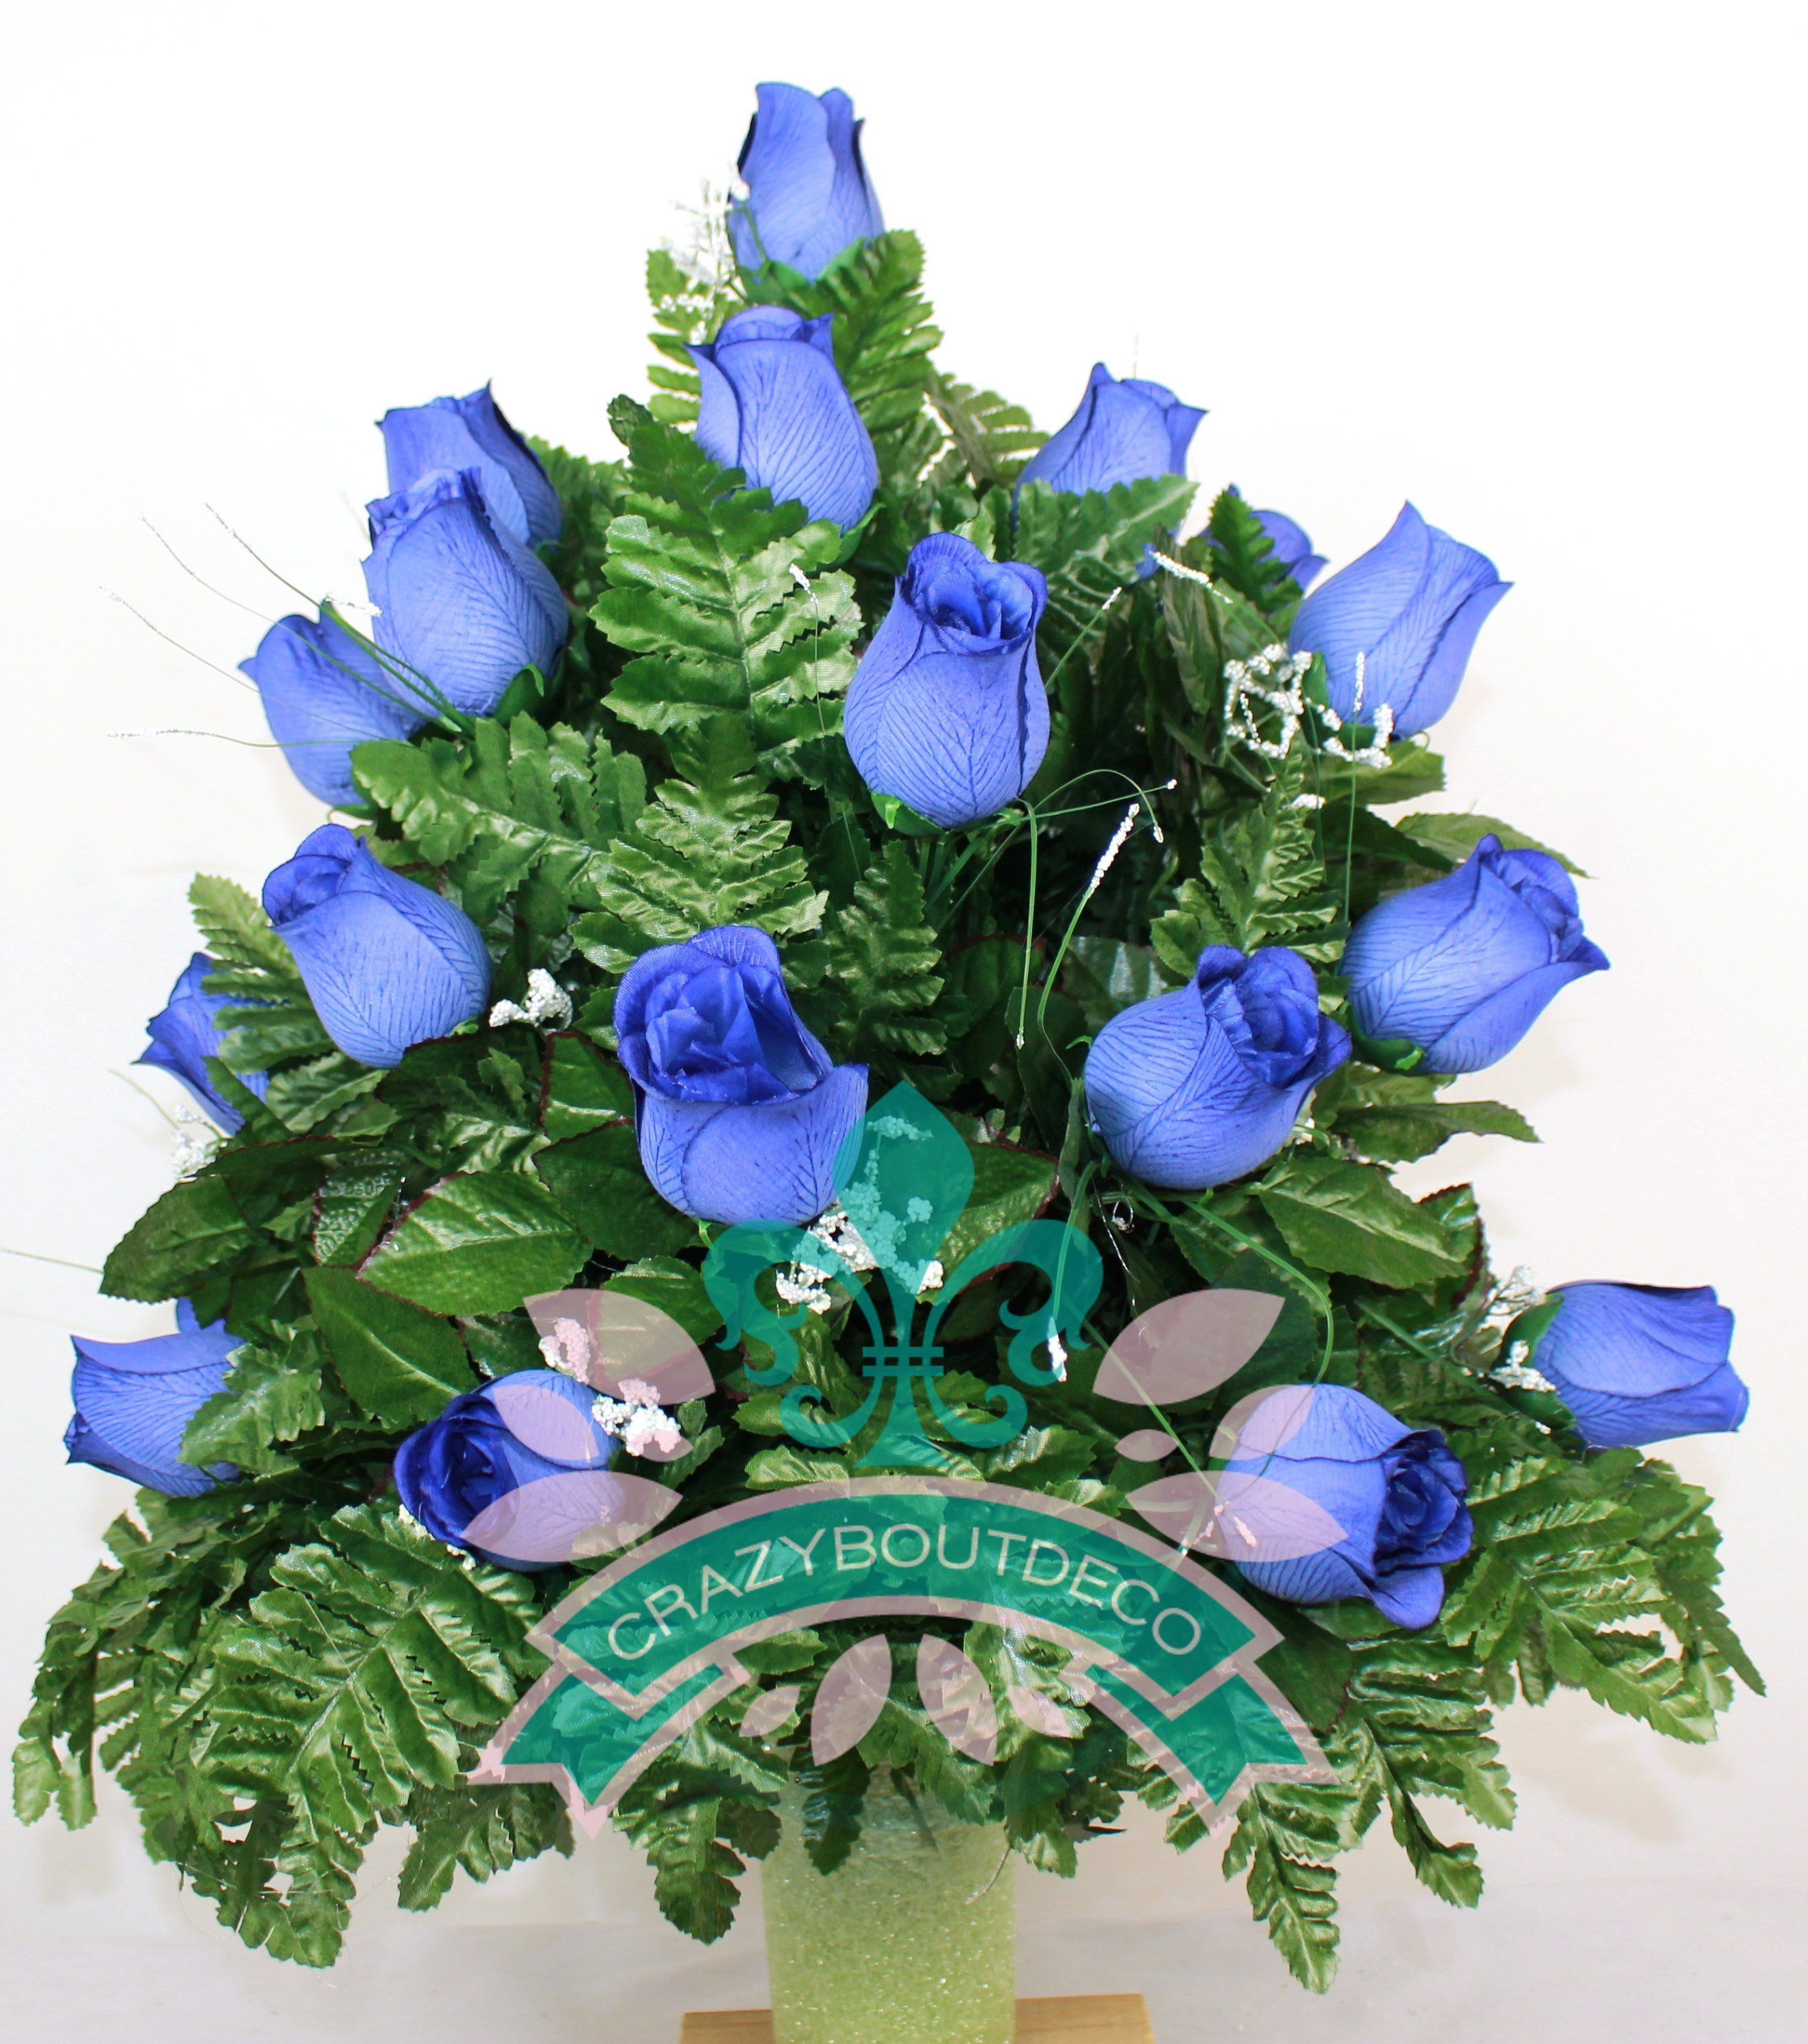 4 inch vase of beautiful xl royal blue roses cemetery vase arrangement for 3 inch regarding beautiful xl royal blue roses cemetery vase arrangement for 3 inch vase by crazyboutdeco on etsy